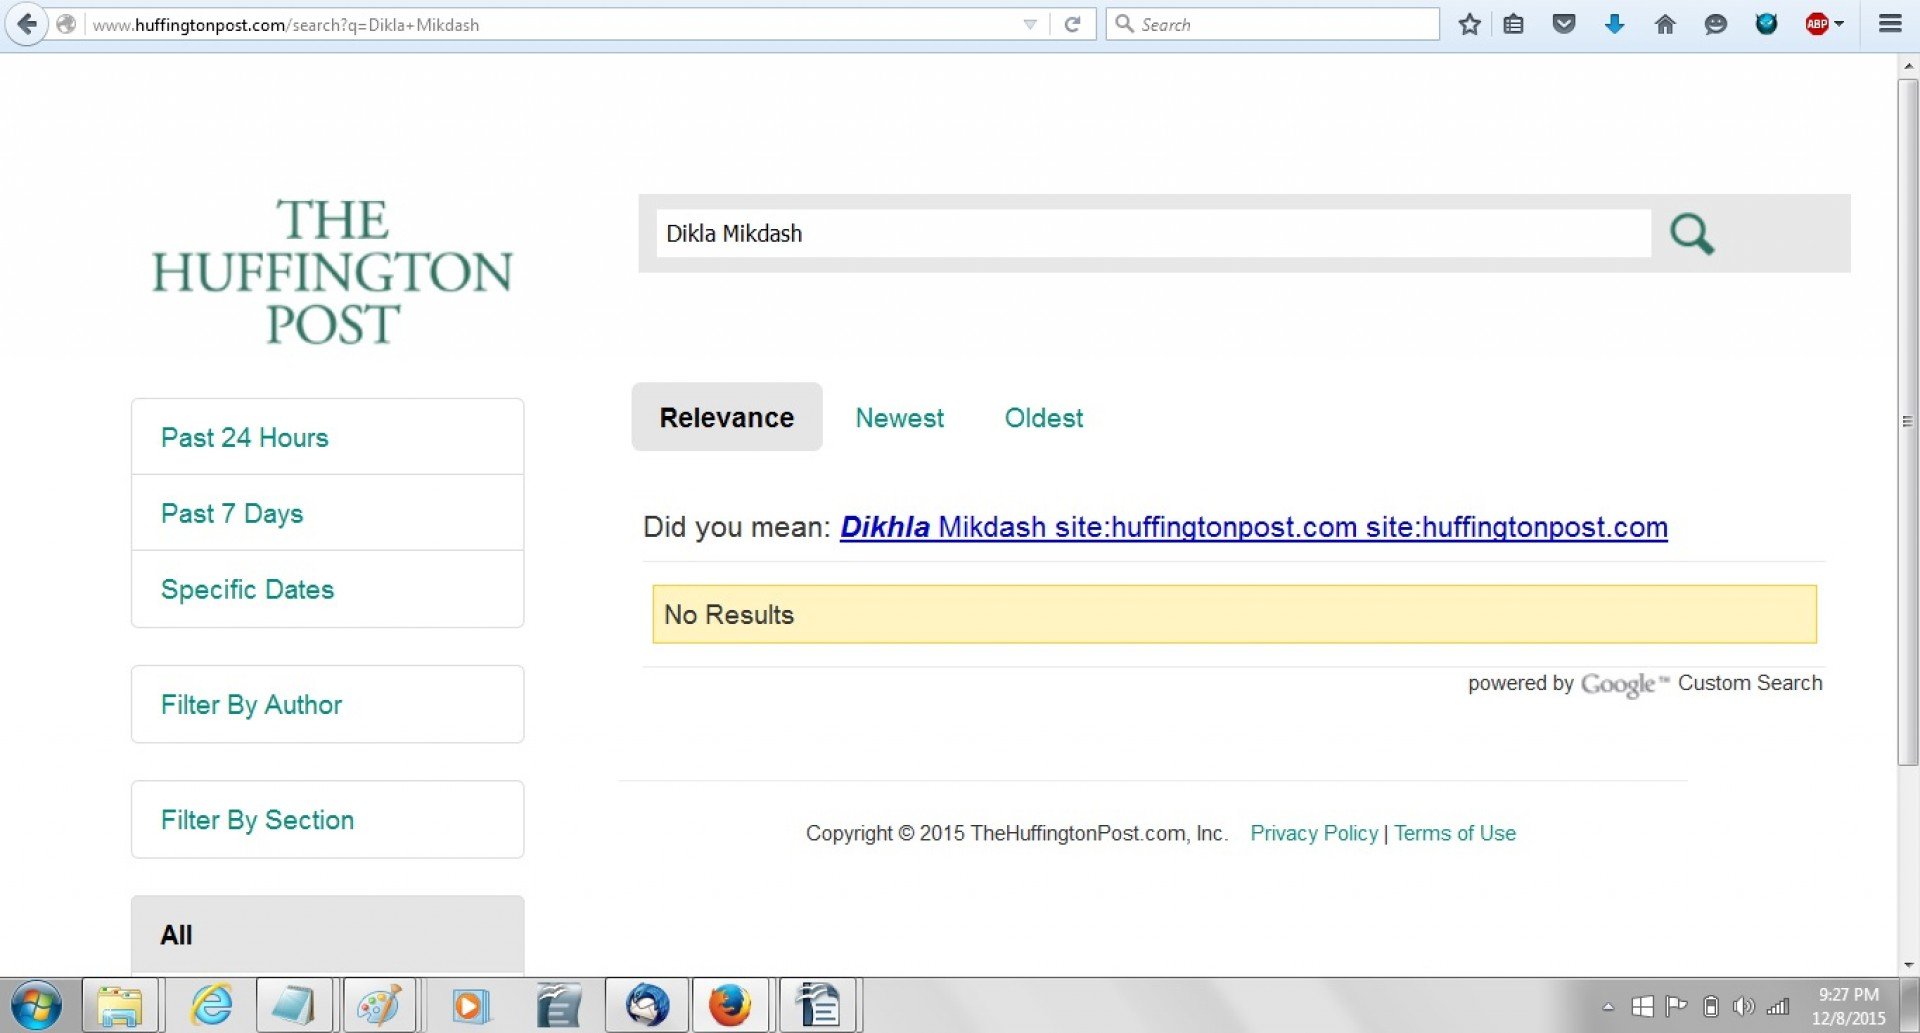 015 Research Paper Hire Someone To Write My Search Dikla Mikdash At Huffpost Top 1920